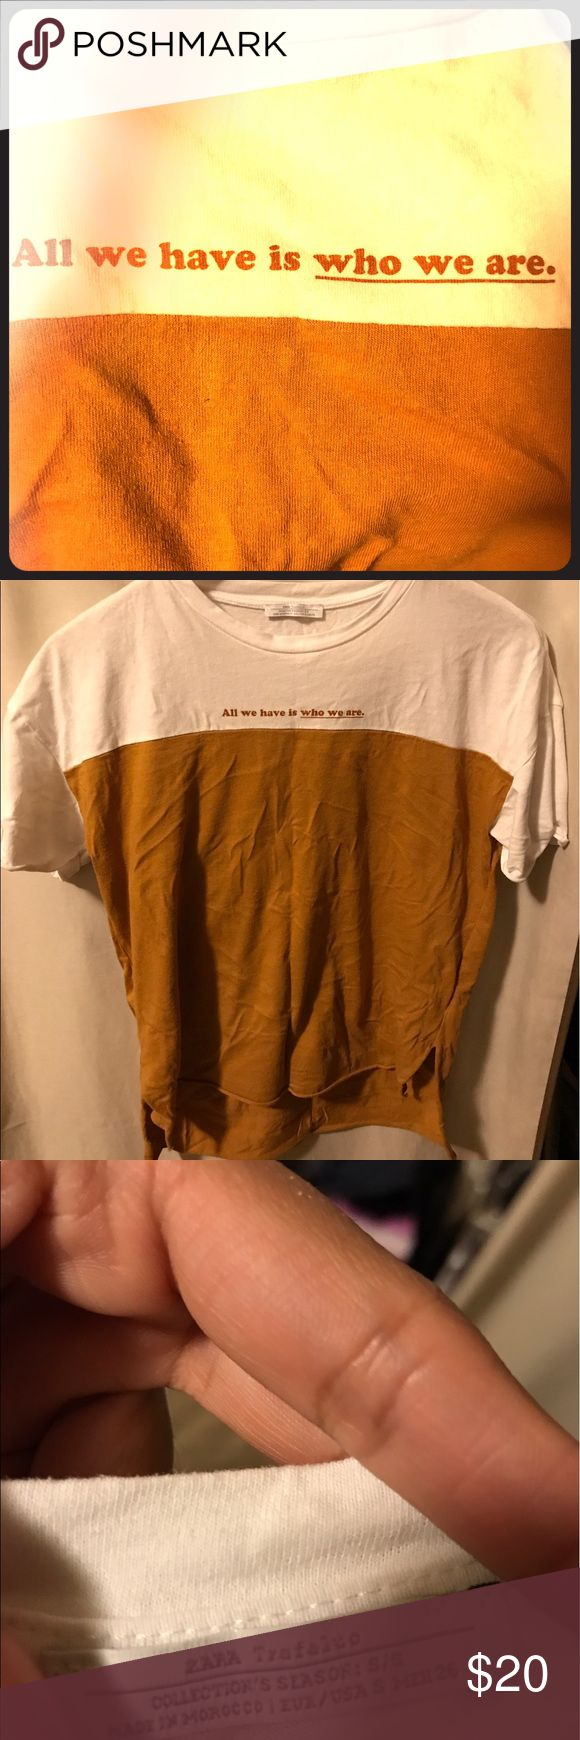 ZARA Tshirt • Size SMALL  • Sleeves and bottom of the shirt both roll up a bit. (as purchased) • No flaws 10/10 condition || Color on the bottom is like a dark honey mustard.   * Sorry for the wrinkles! 😇 Zara Tops Tees - Short Sleeve